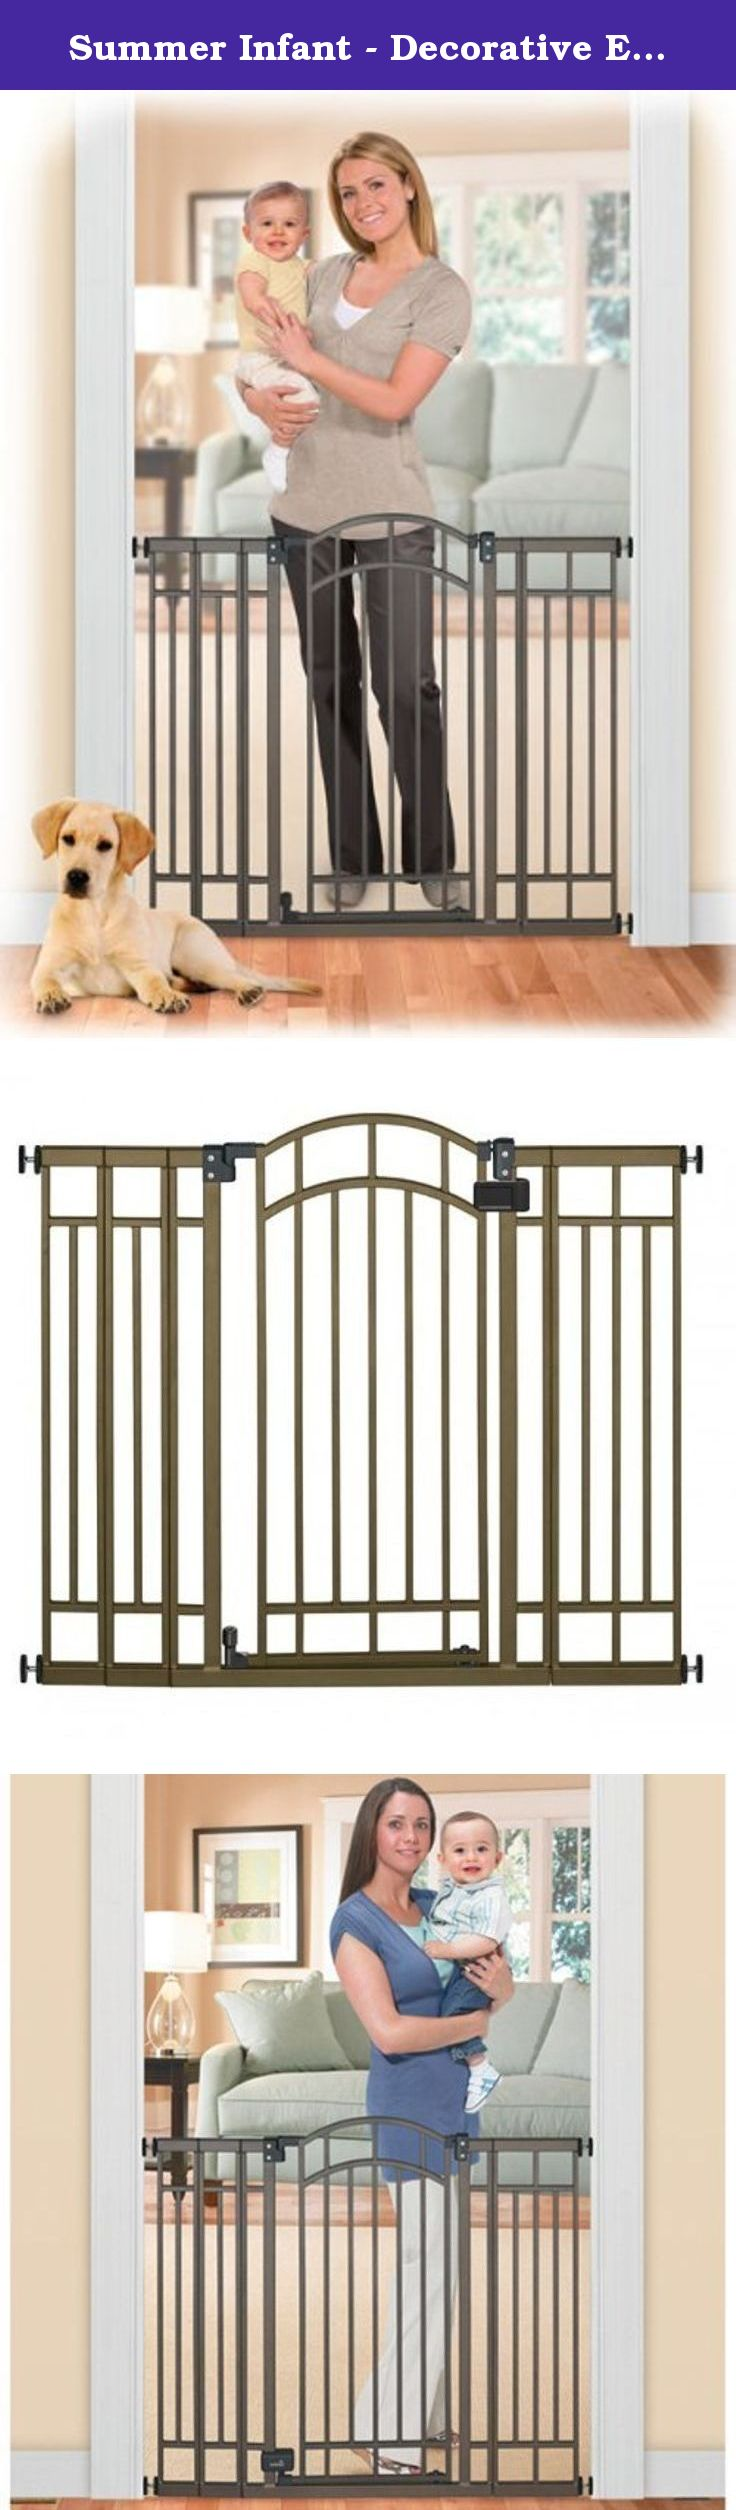 Summer Infant Decorative Extra Tall Gate. Hardware